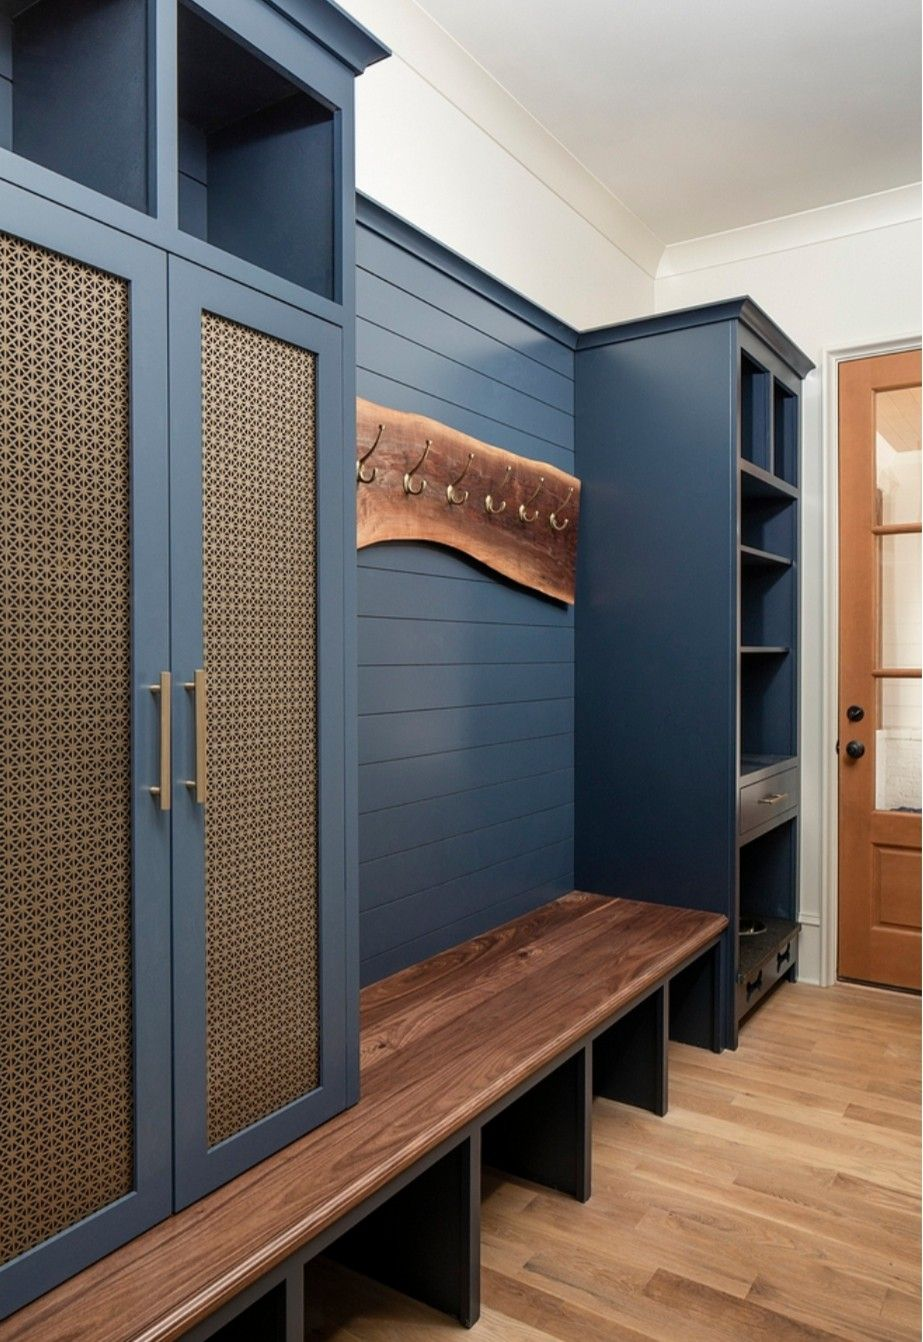 Pin by Mary Bowder on Home Ideas Mudroom design